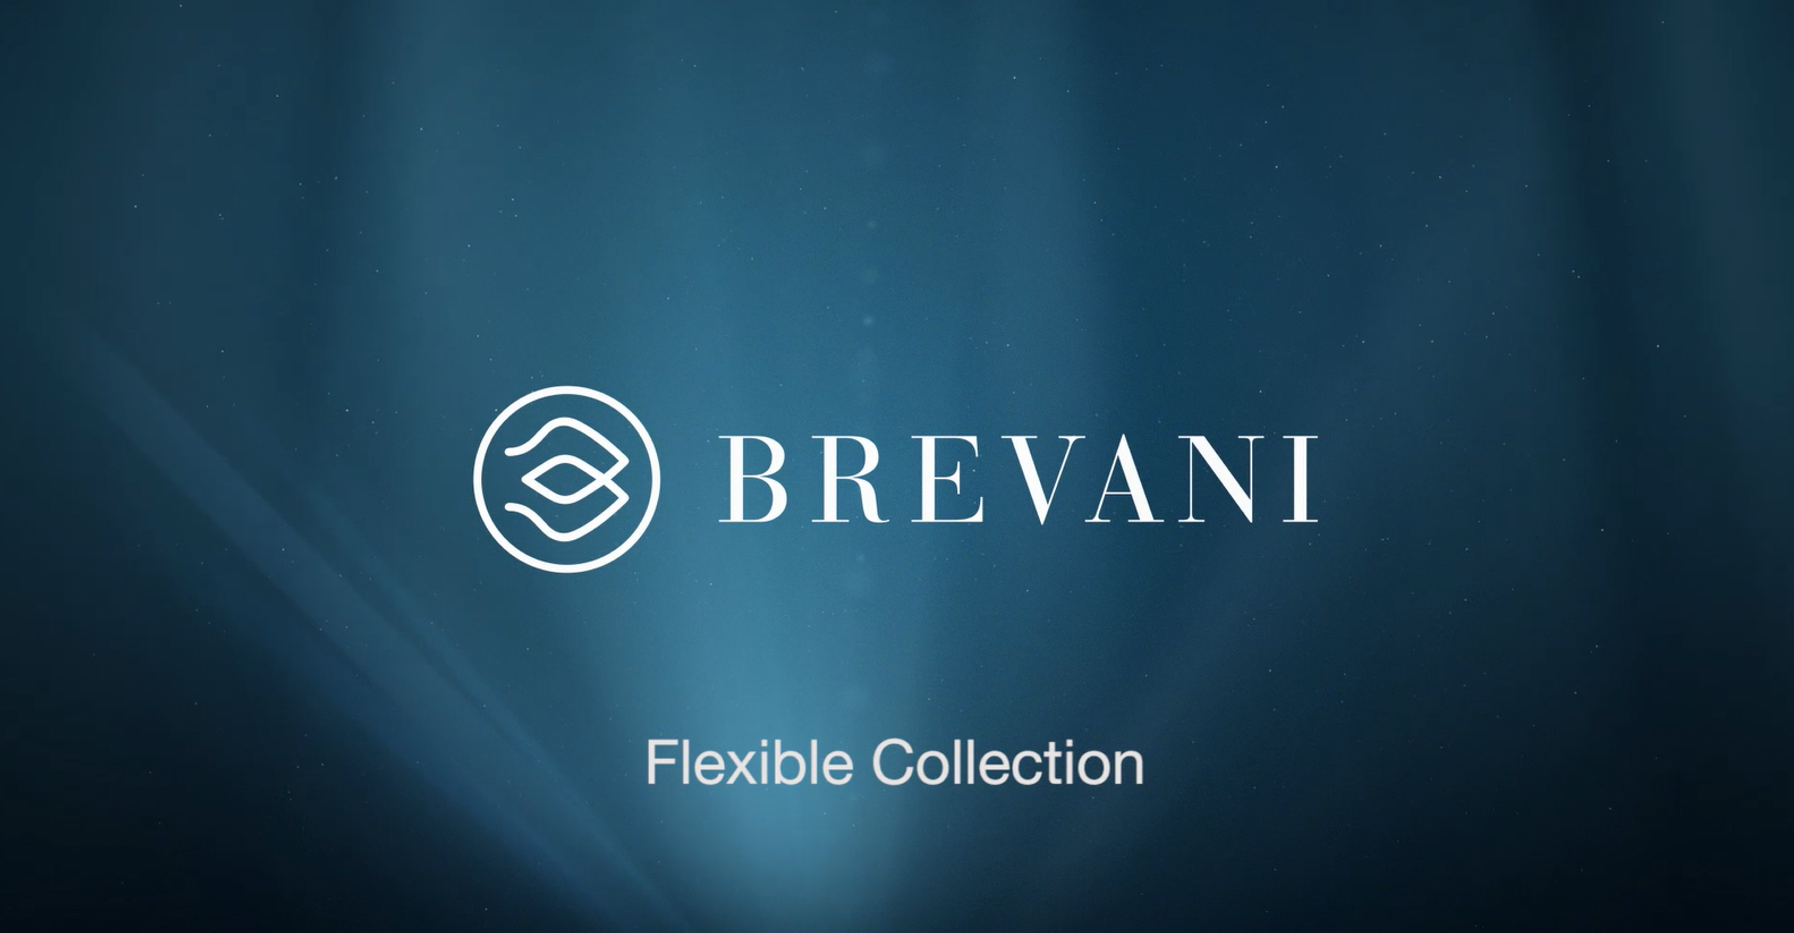 Brevani-Flexible-3.mp4